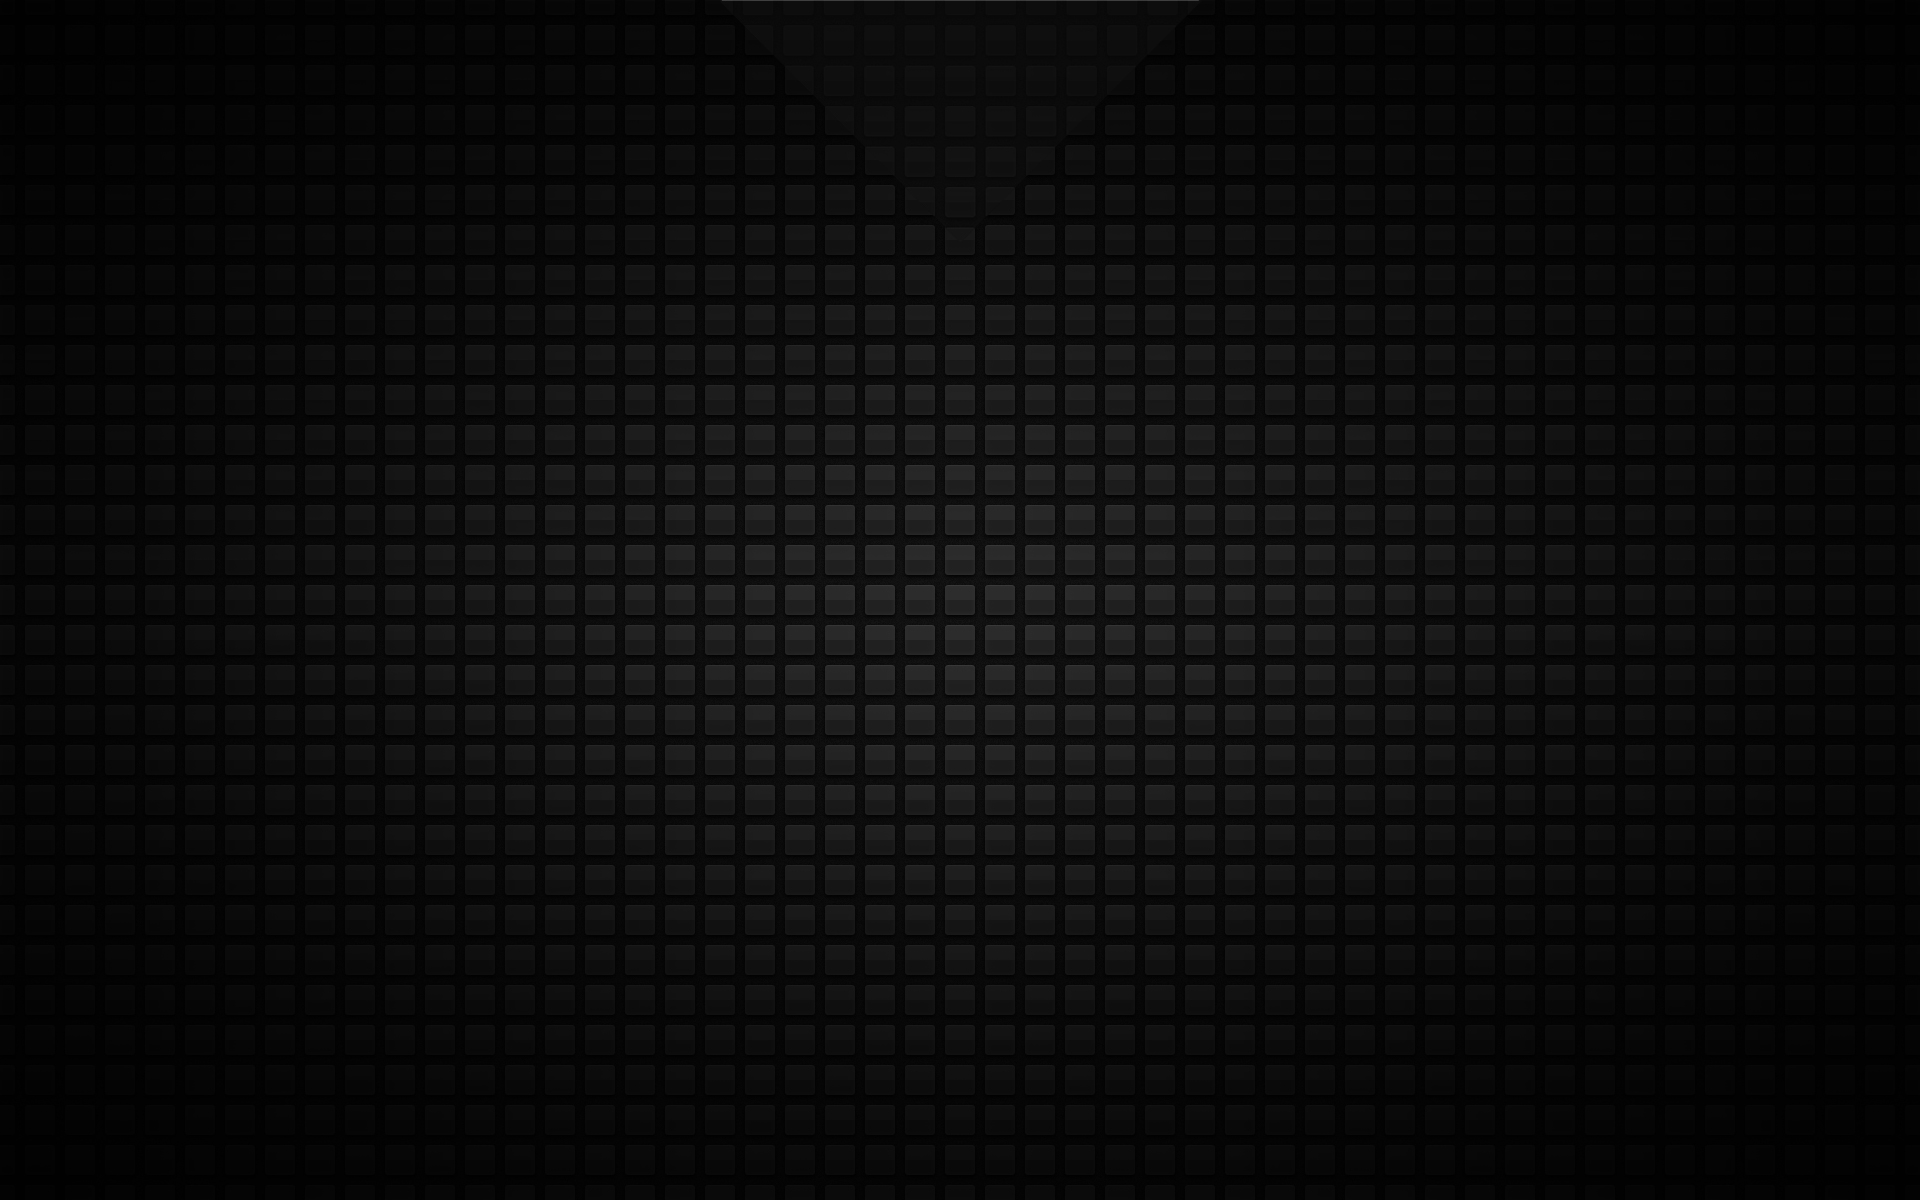 Black Boxes Wallpaper